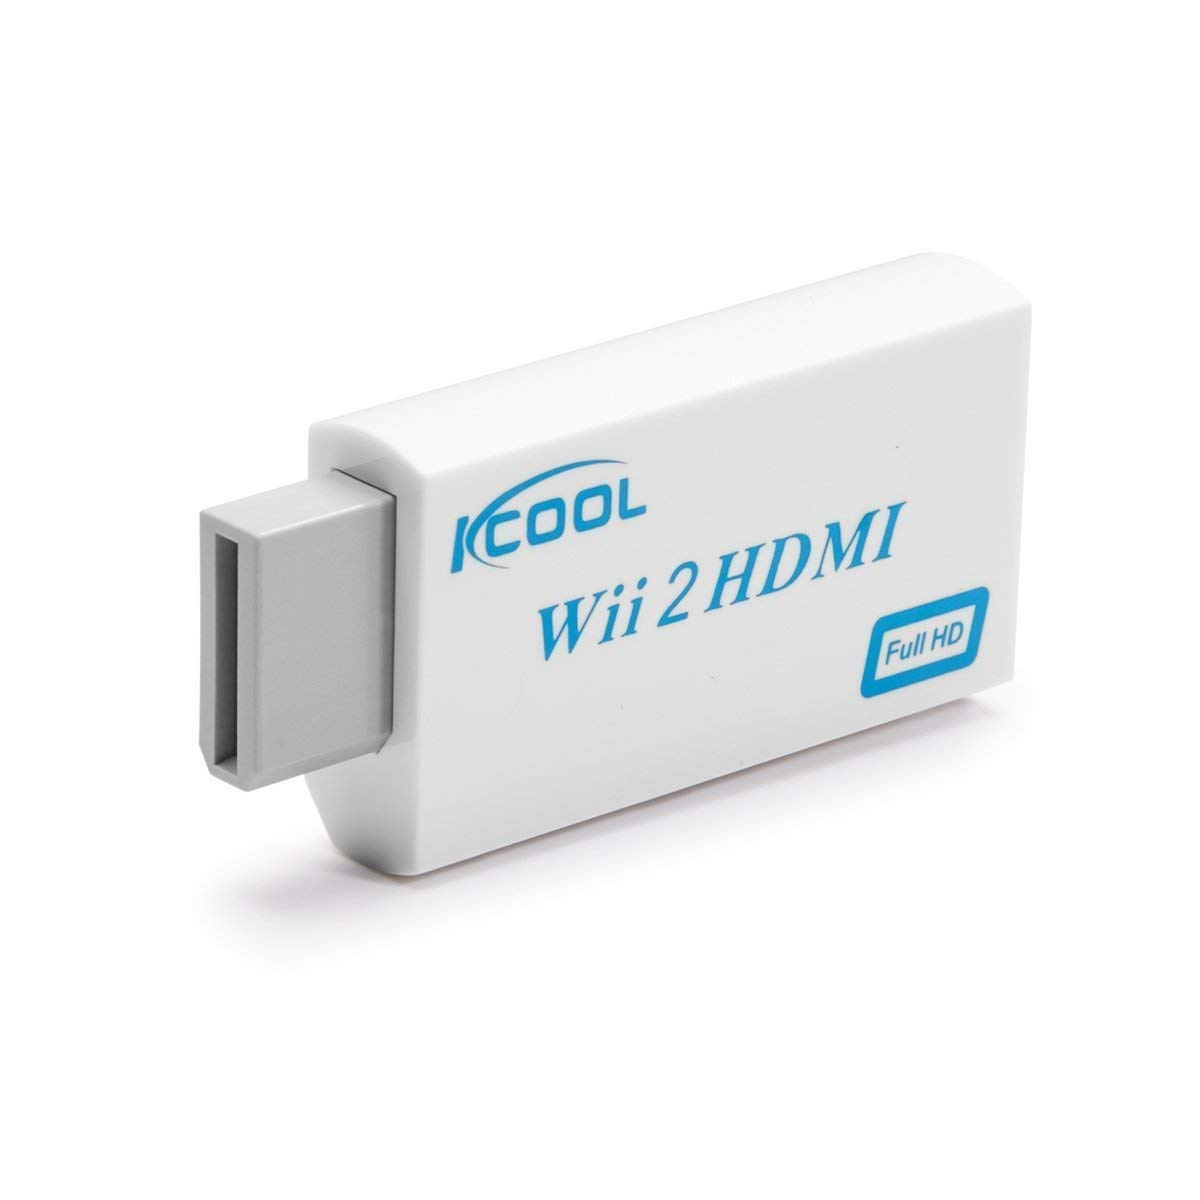 IKCOOL Wii to HDMI Converter Output Video Audio Adapter - Supports All Wii Display Modes (NTSC 480I, 480P,PAL 576I), Best Compatibility and Stability (1)